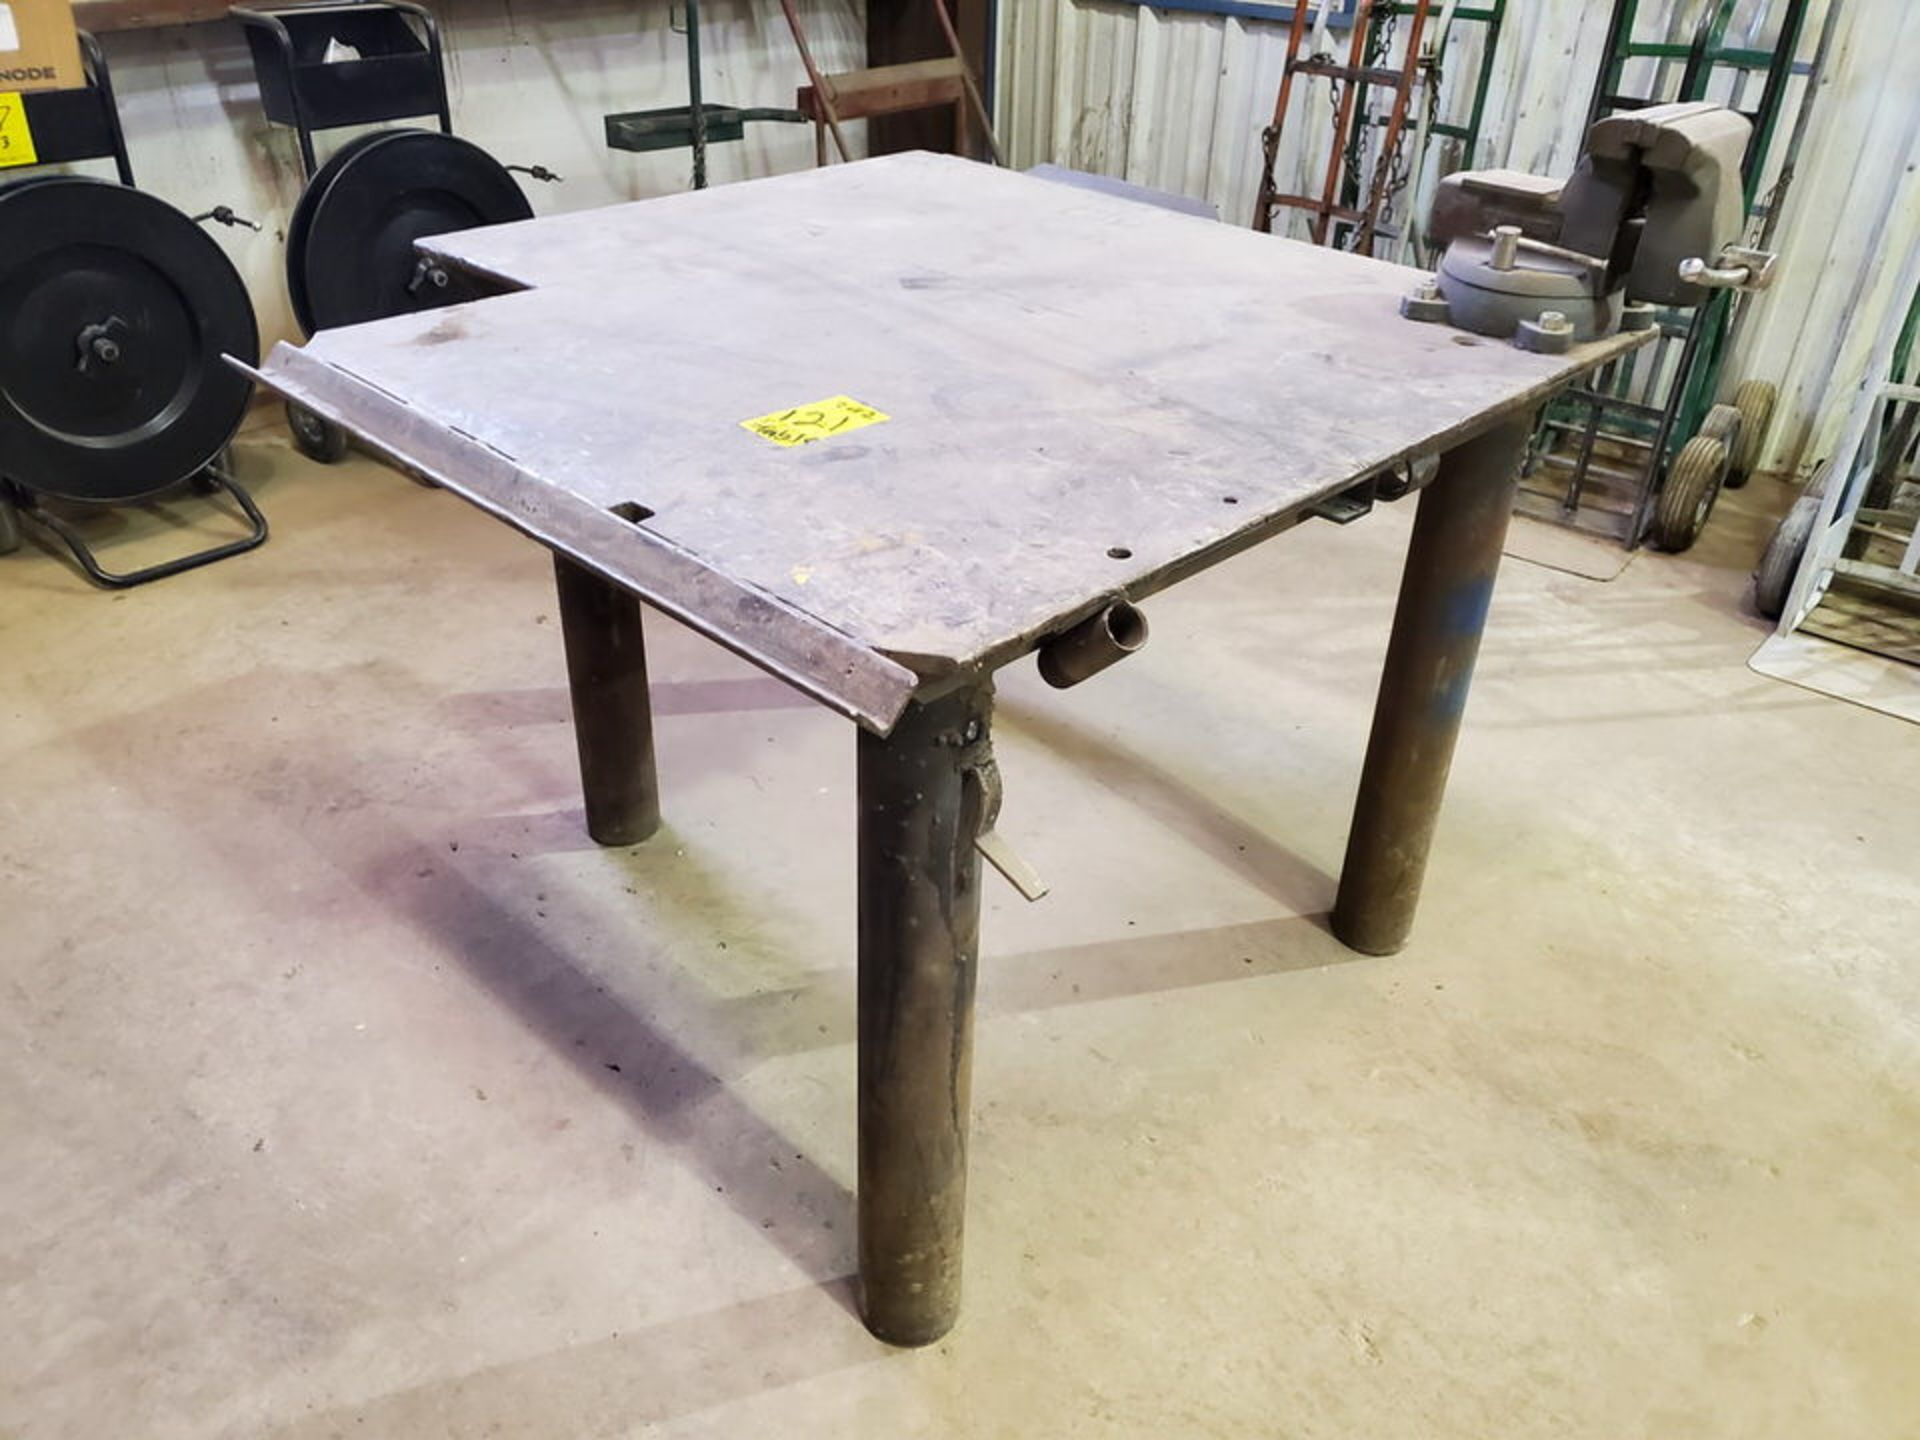 "(2) Stl Welding Tables (1) 49"" x 55"" x 36""H, W/ 6"" Vise; (1) 48"" x 72"" x 36""H (Matl. Excluded) - Image 2 of 8"